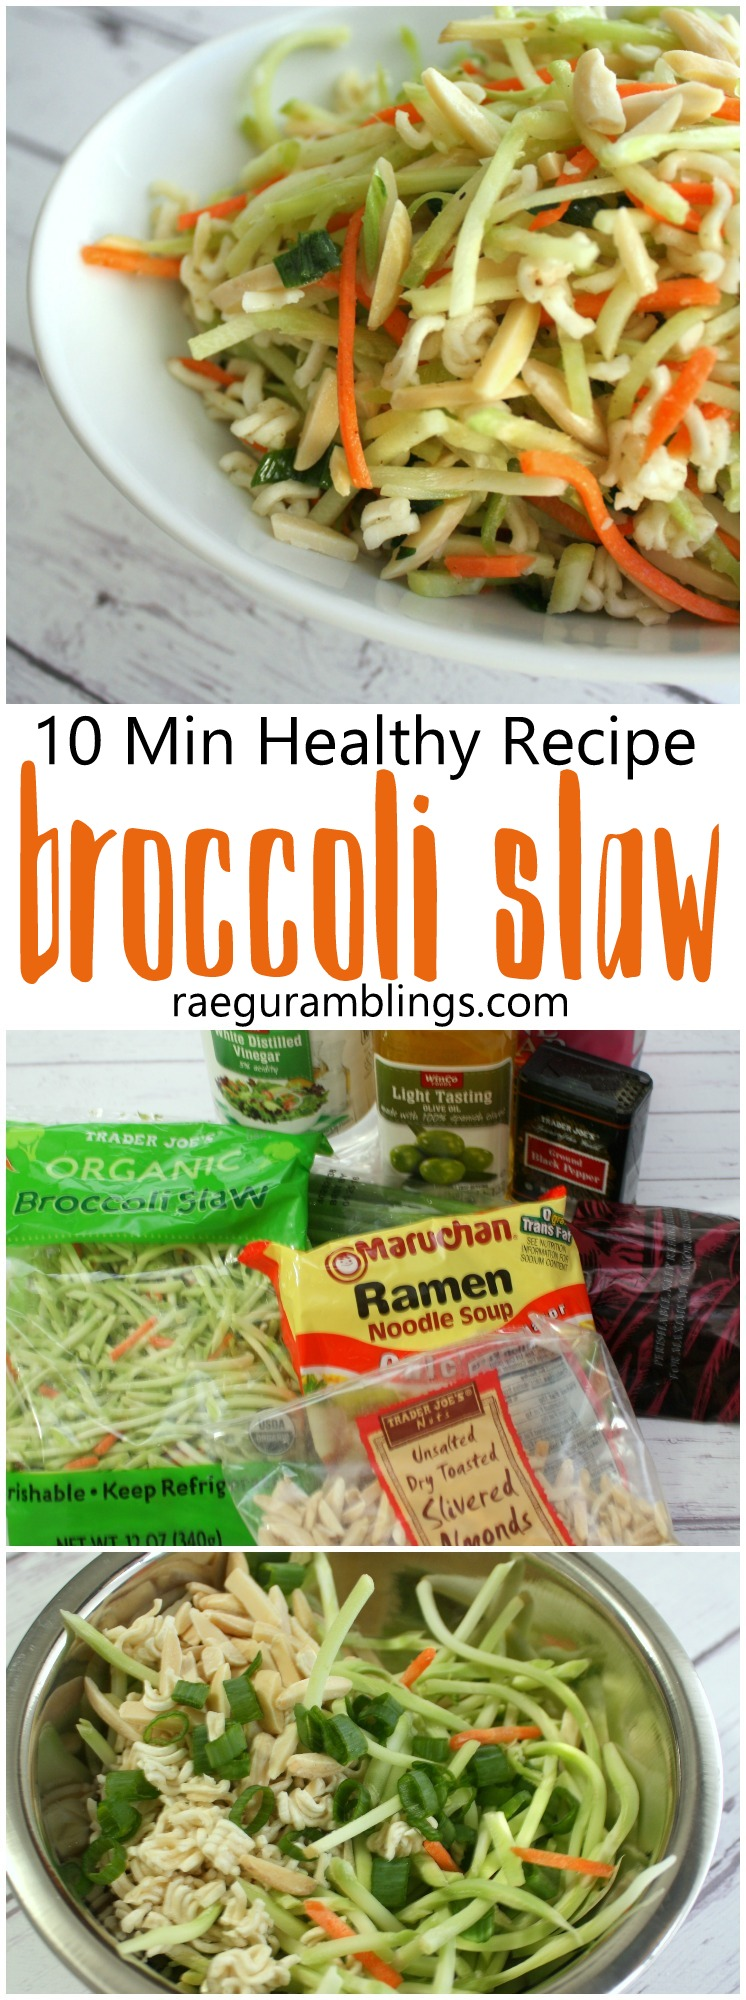 New family favorite. Even the kids asked for more will be making this fast broccoli slaw recipe again. Perfect for lunch or dinner with a rotisserie chicken and great to make ahead for picnics and potlucks